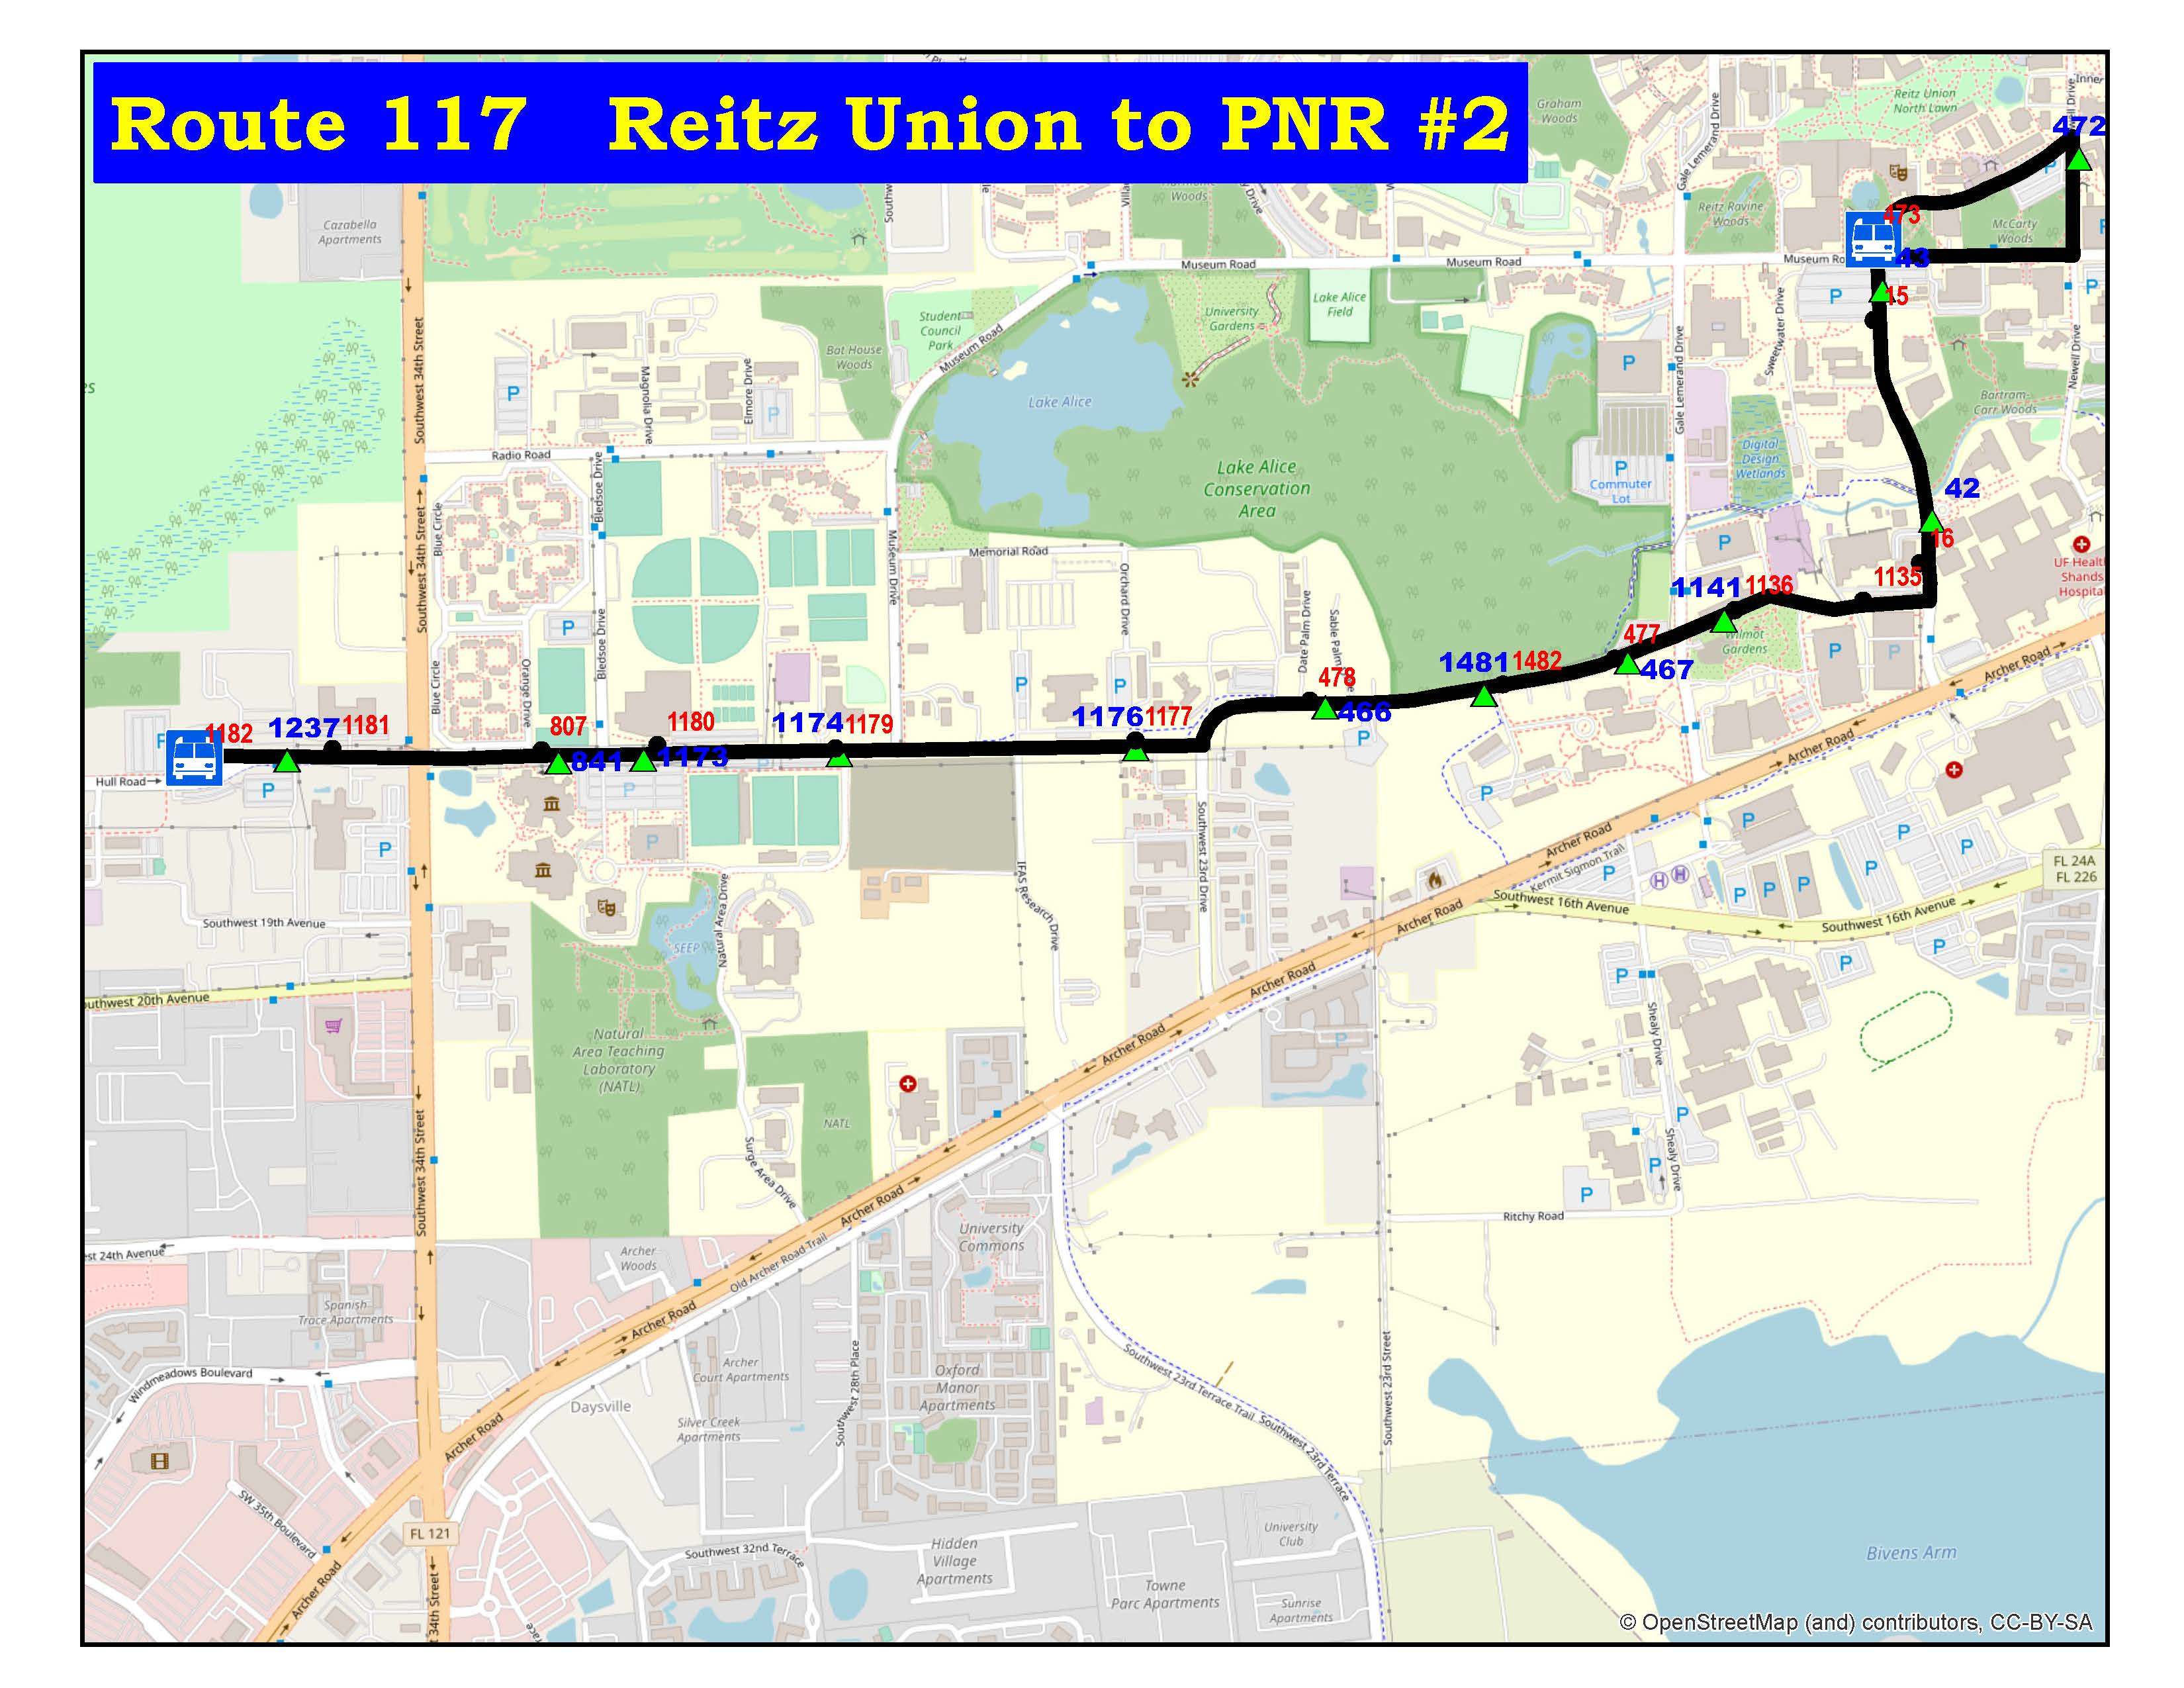 Route 117 Reitz Union To Park And Ride 2 Sw 34 Street Go Rts Student input makes expanded campus union uniquely uf. go rts